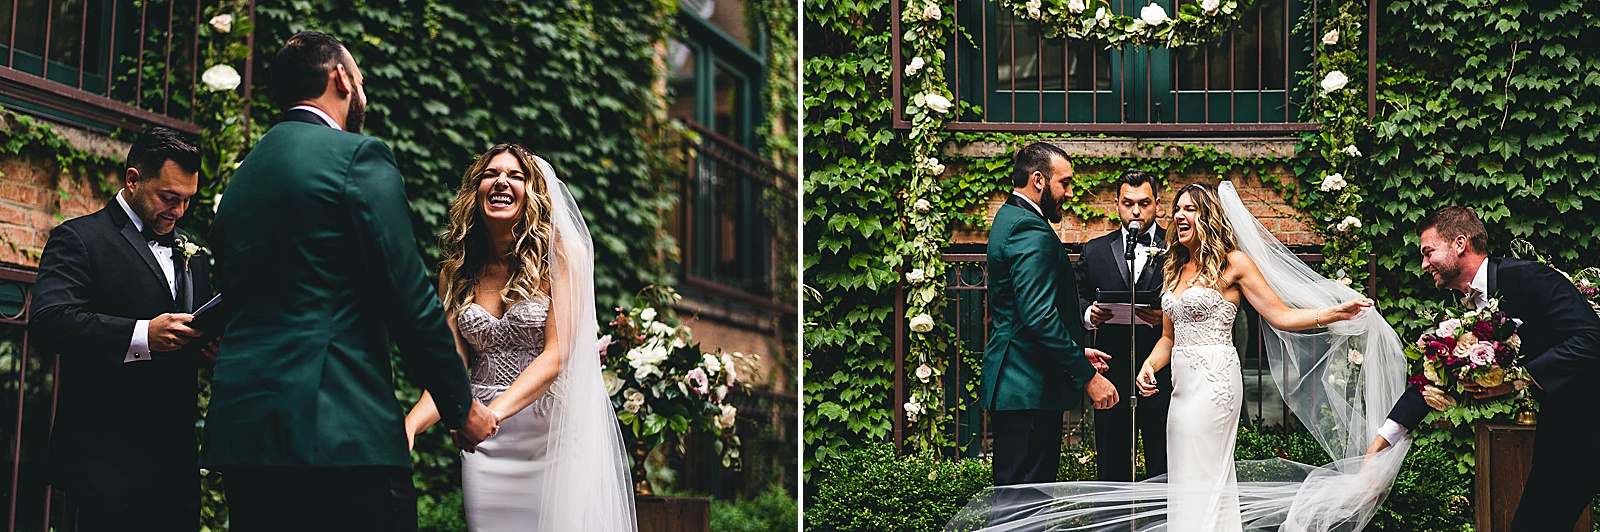 37 wedding photos at ivy room - Ivy Room Chicago Wedding Photos // Bethany + Anthony